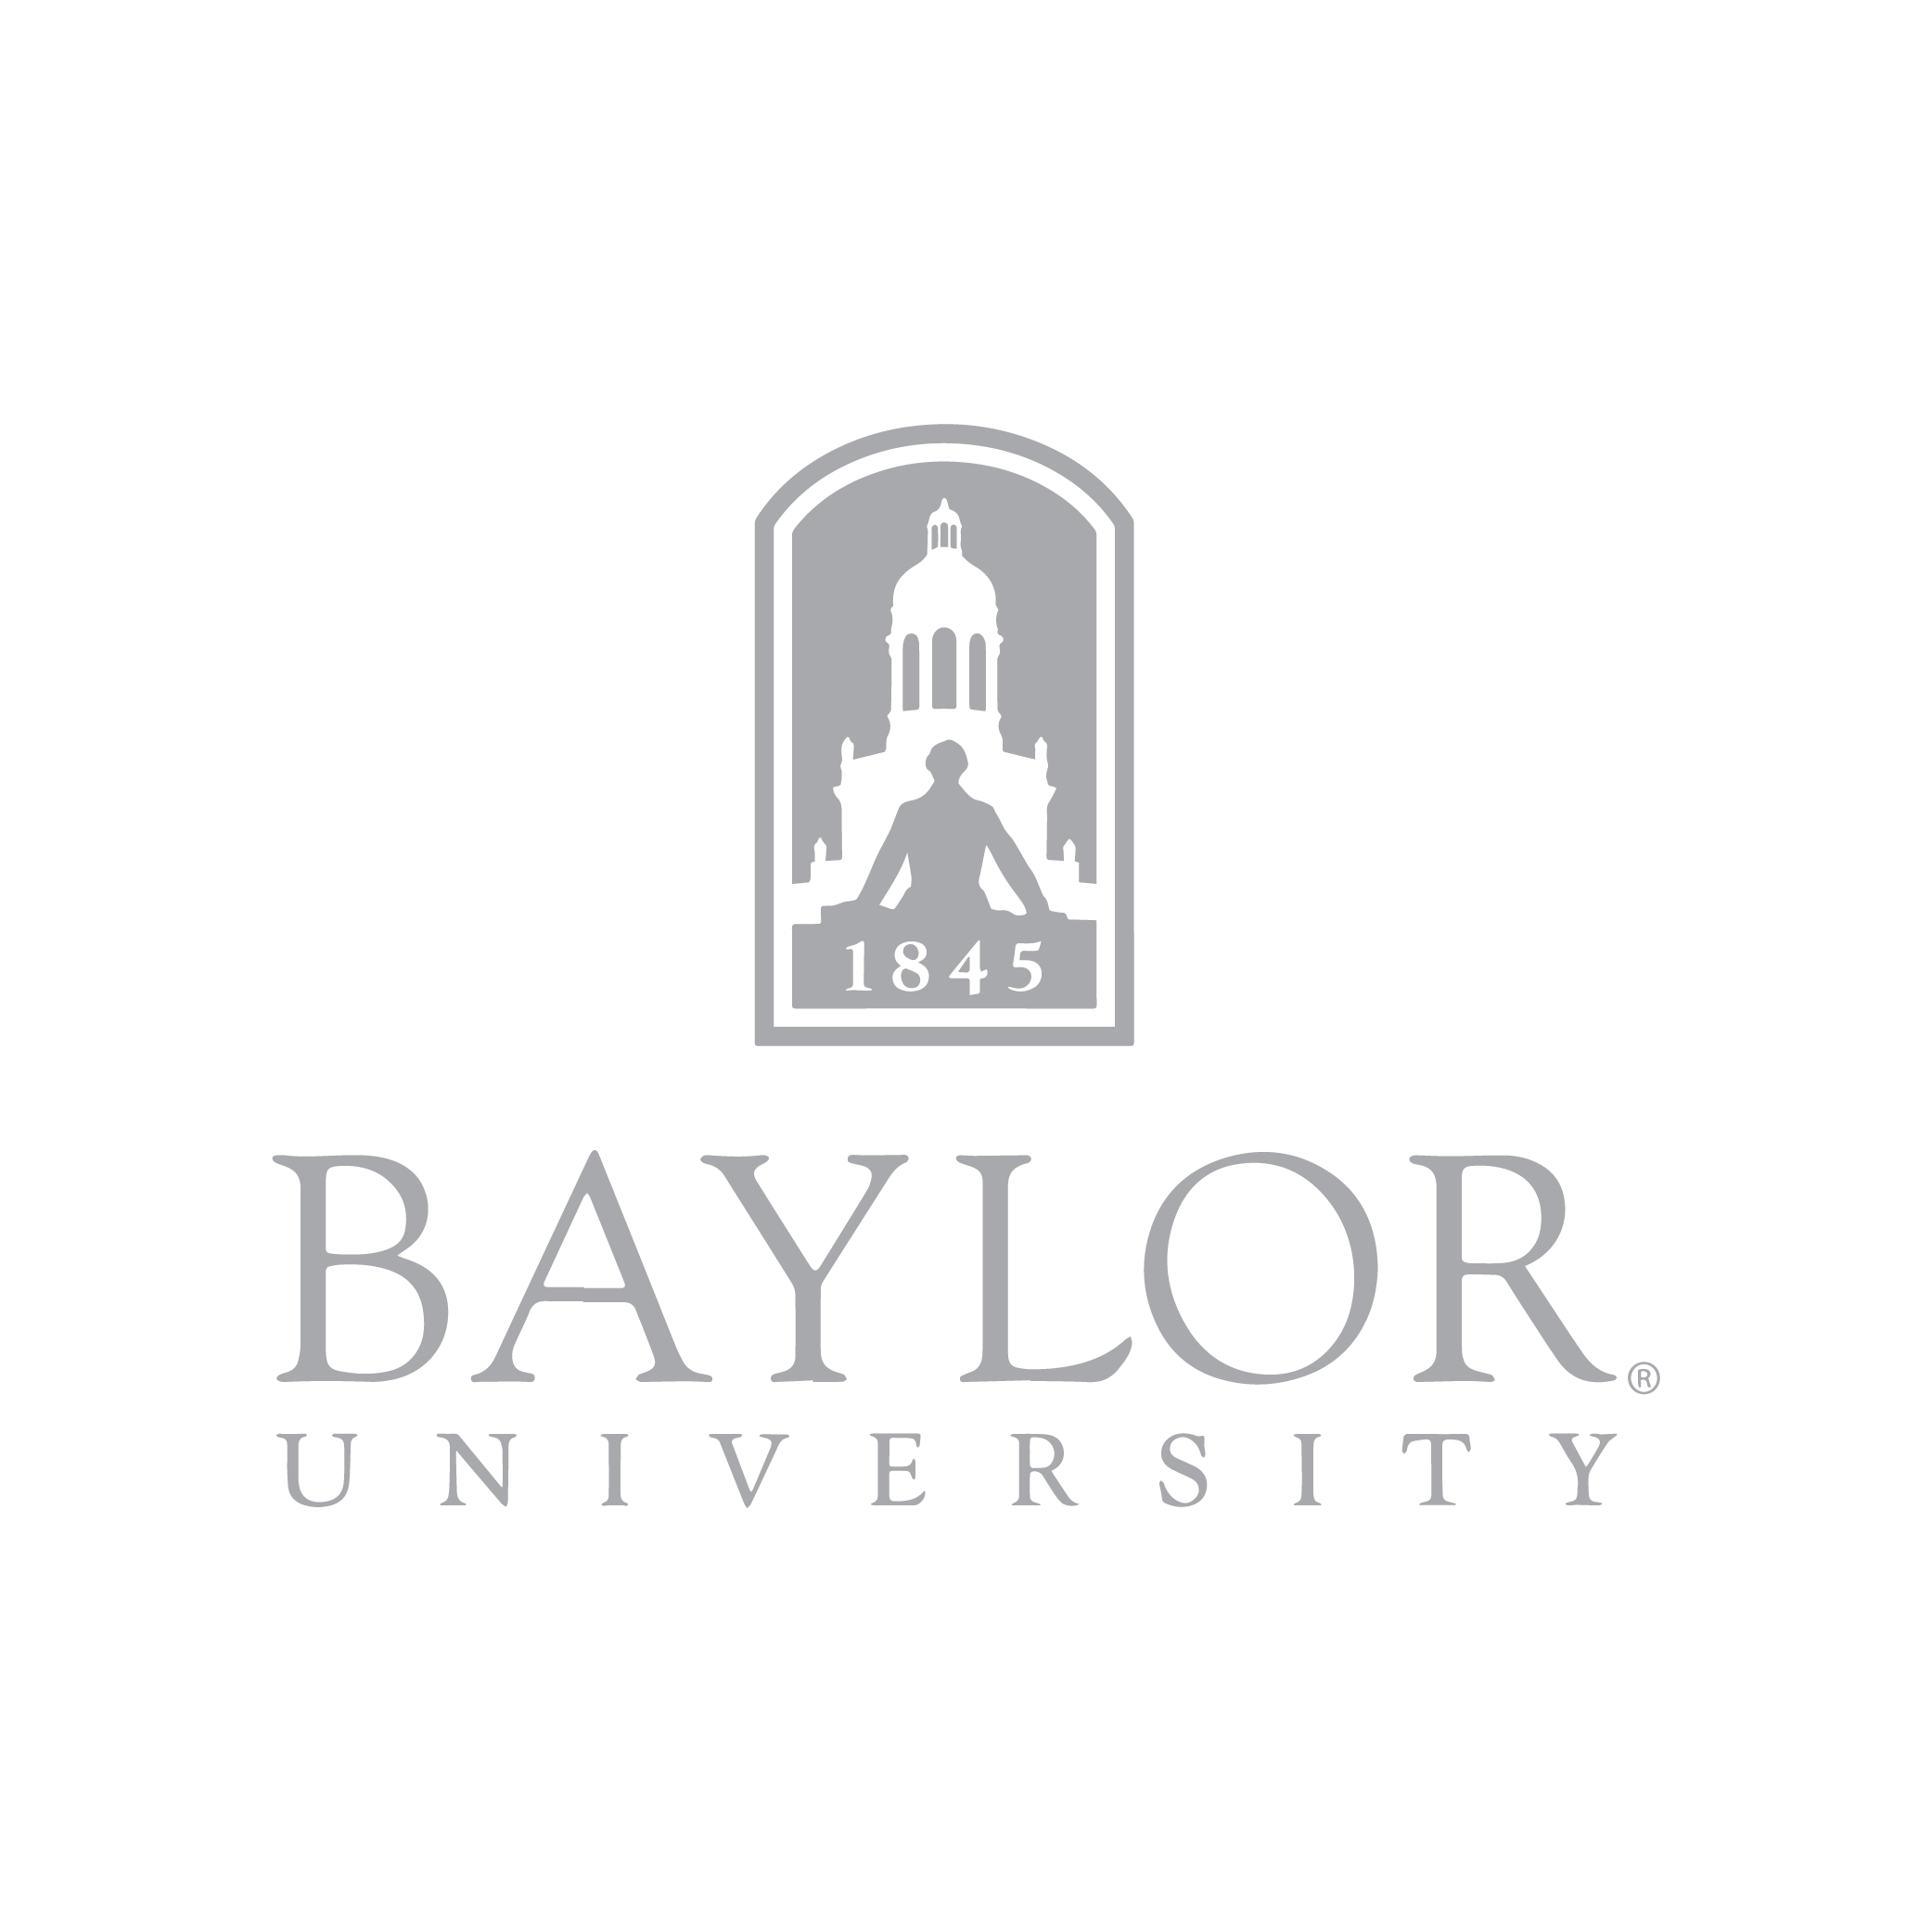 Baylor University (Crouch Library), Waco, TX.